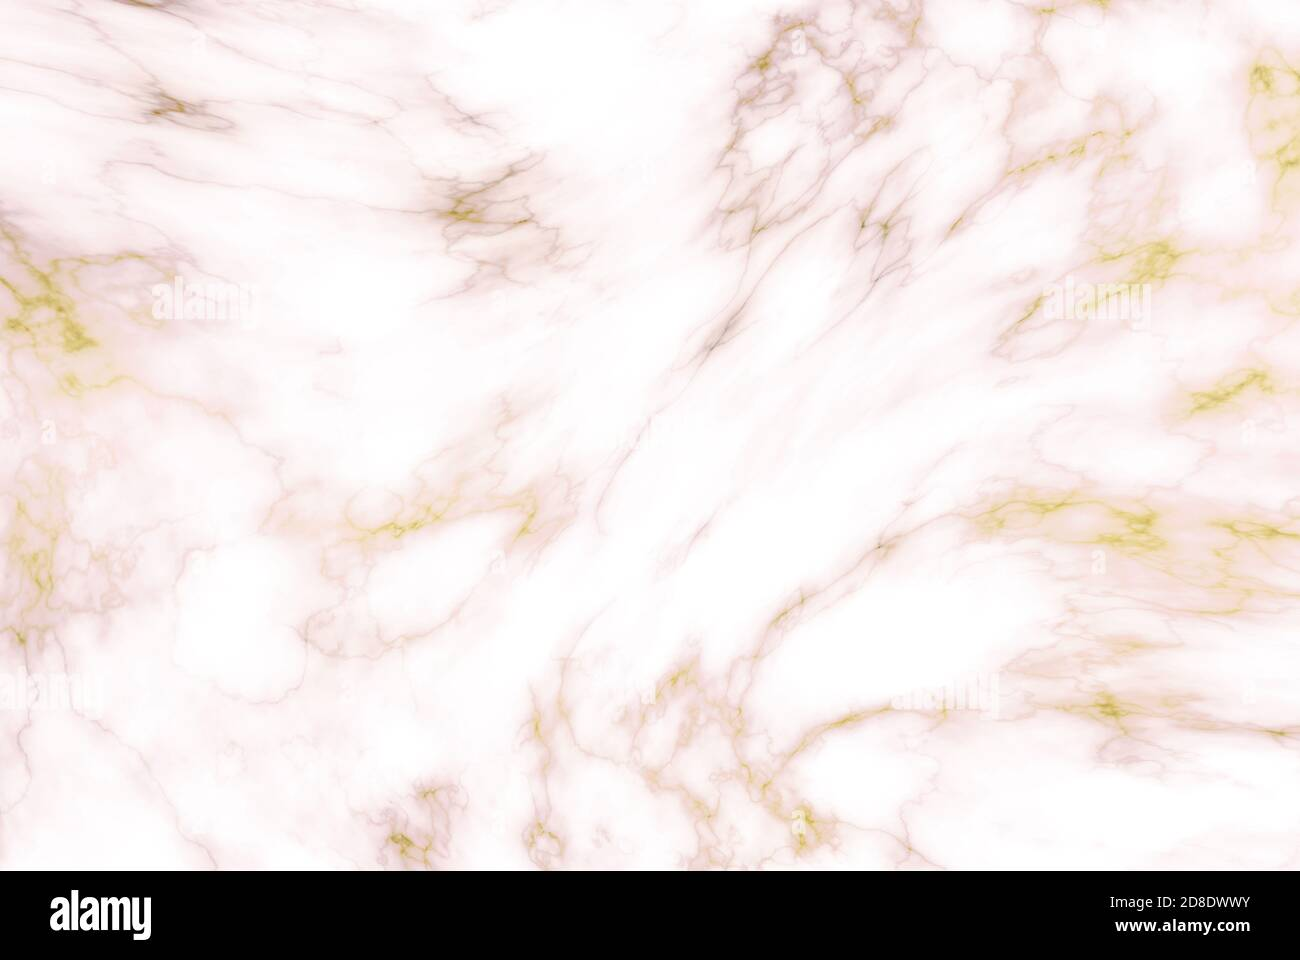 Page 2 Marble Rose Gold Background High Resolution Stock Photography And Images Alamy